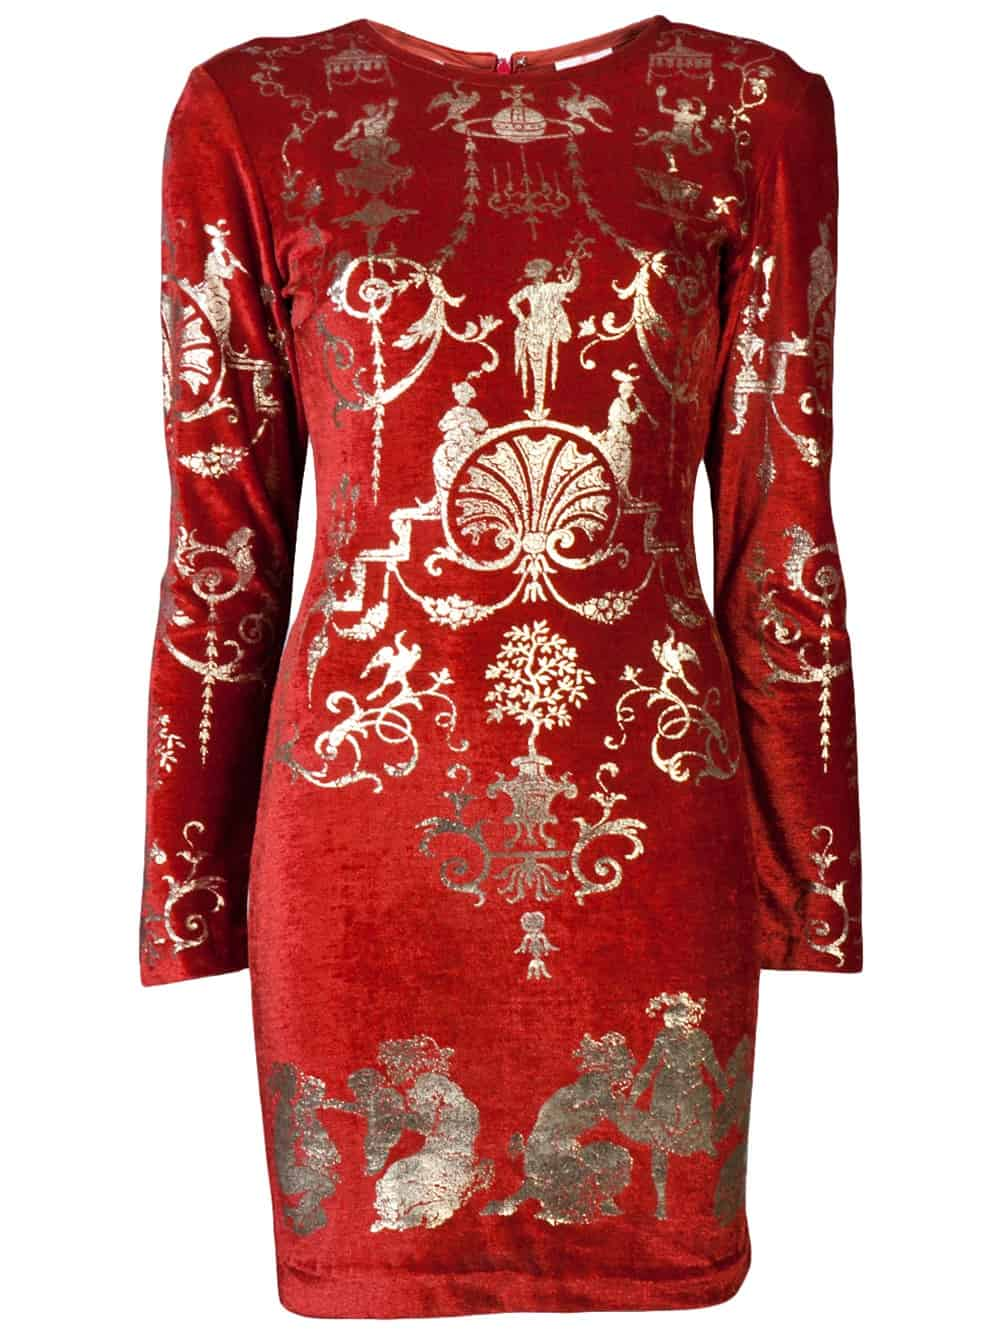 red party lond sleeve dress farfech com Holiday Party Looks & Styles! What To Wear For 2013 New Years Eve Party?